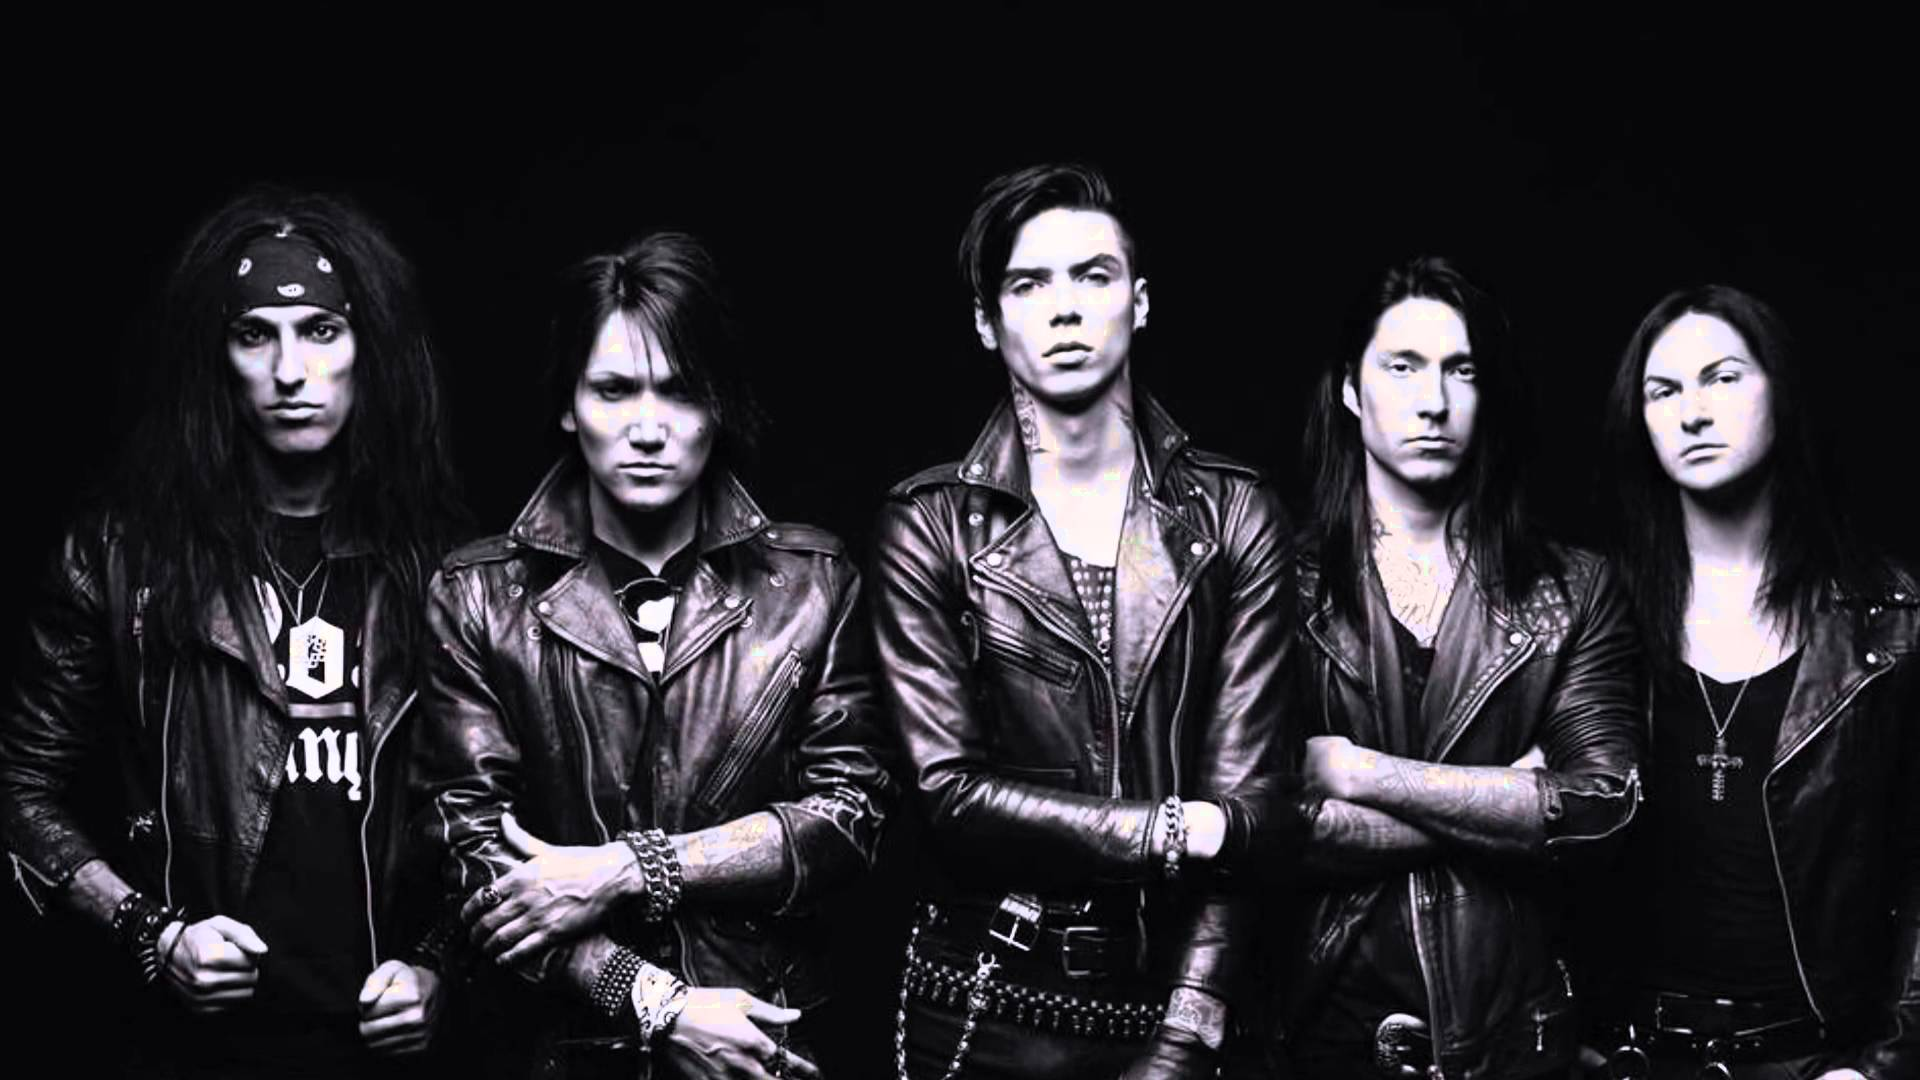 Black Veil Brides Wallpaper Black Veil Brides 269938